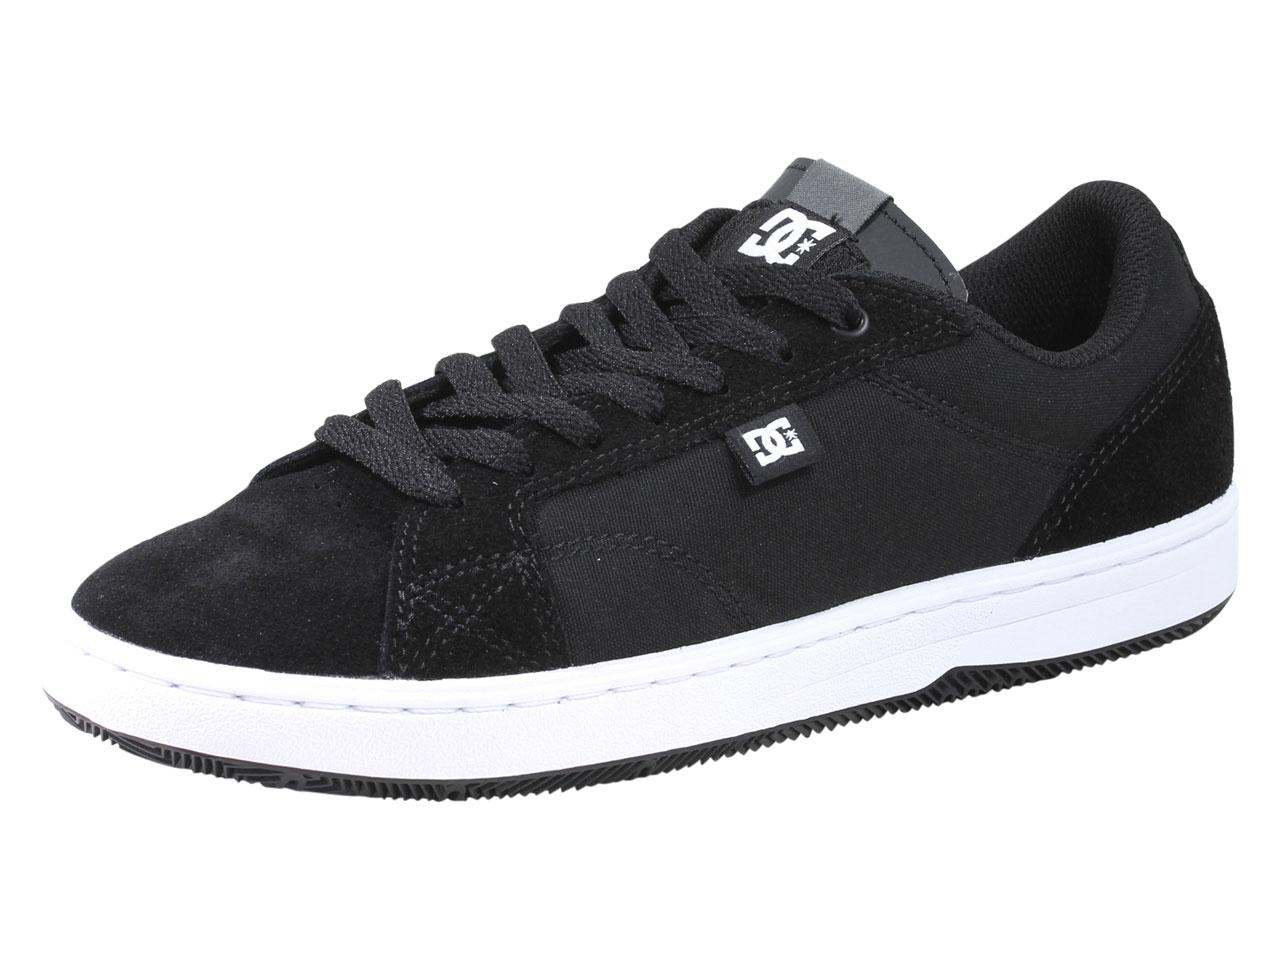 Image of DC Men's Astor Skateboarding Sneakers Shoes - Black - 8 D(M) US